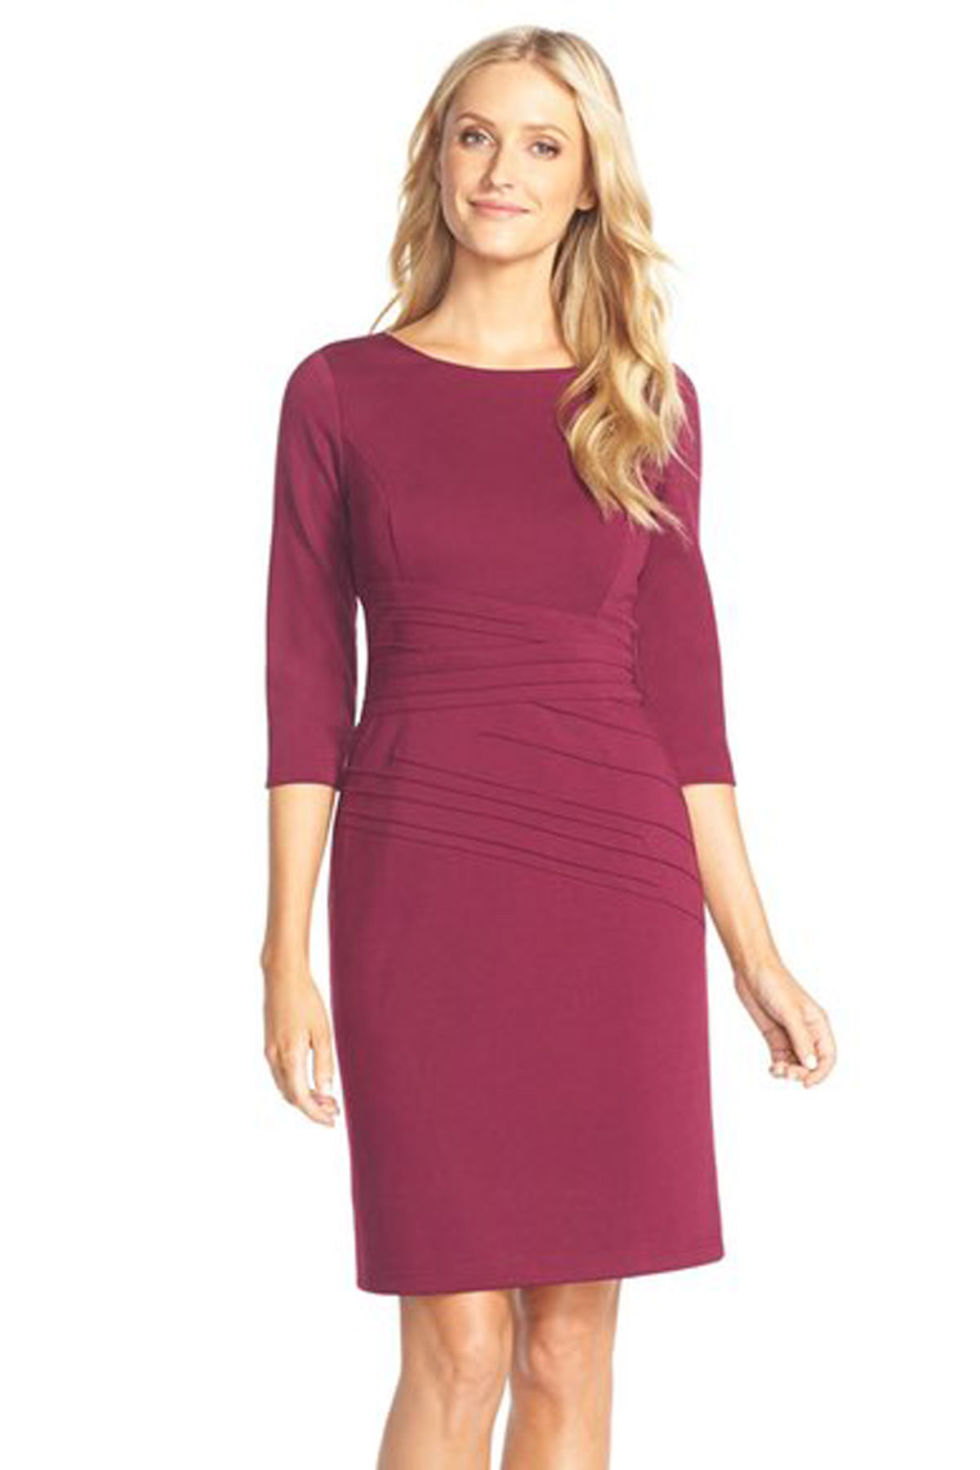 15 Pretty Valentine's Day Dresses Under $50 - Date Night Dresses ...